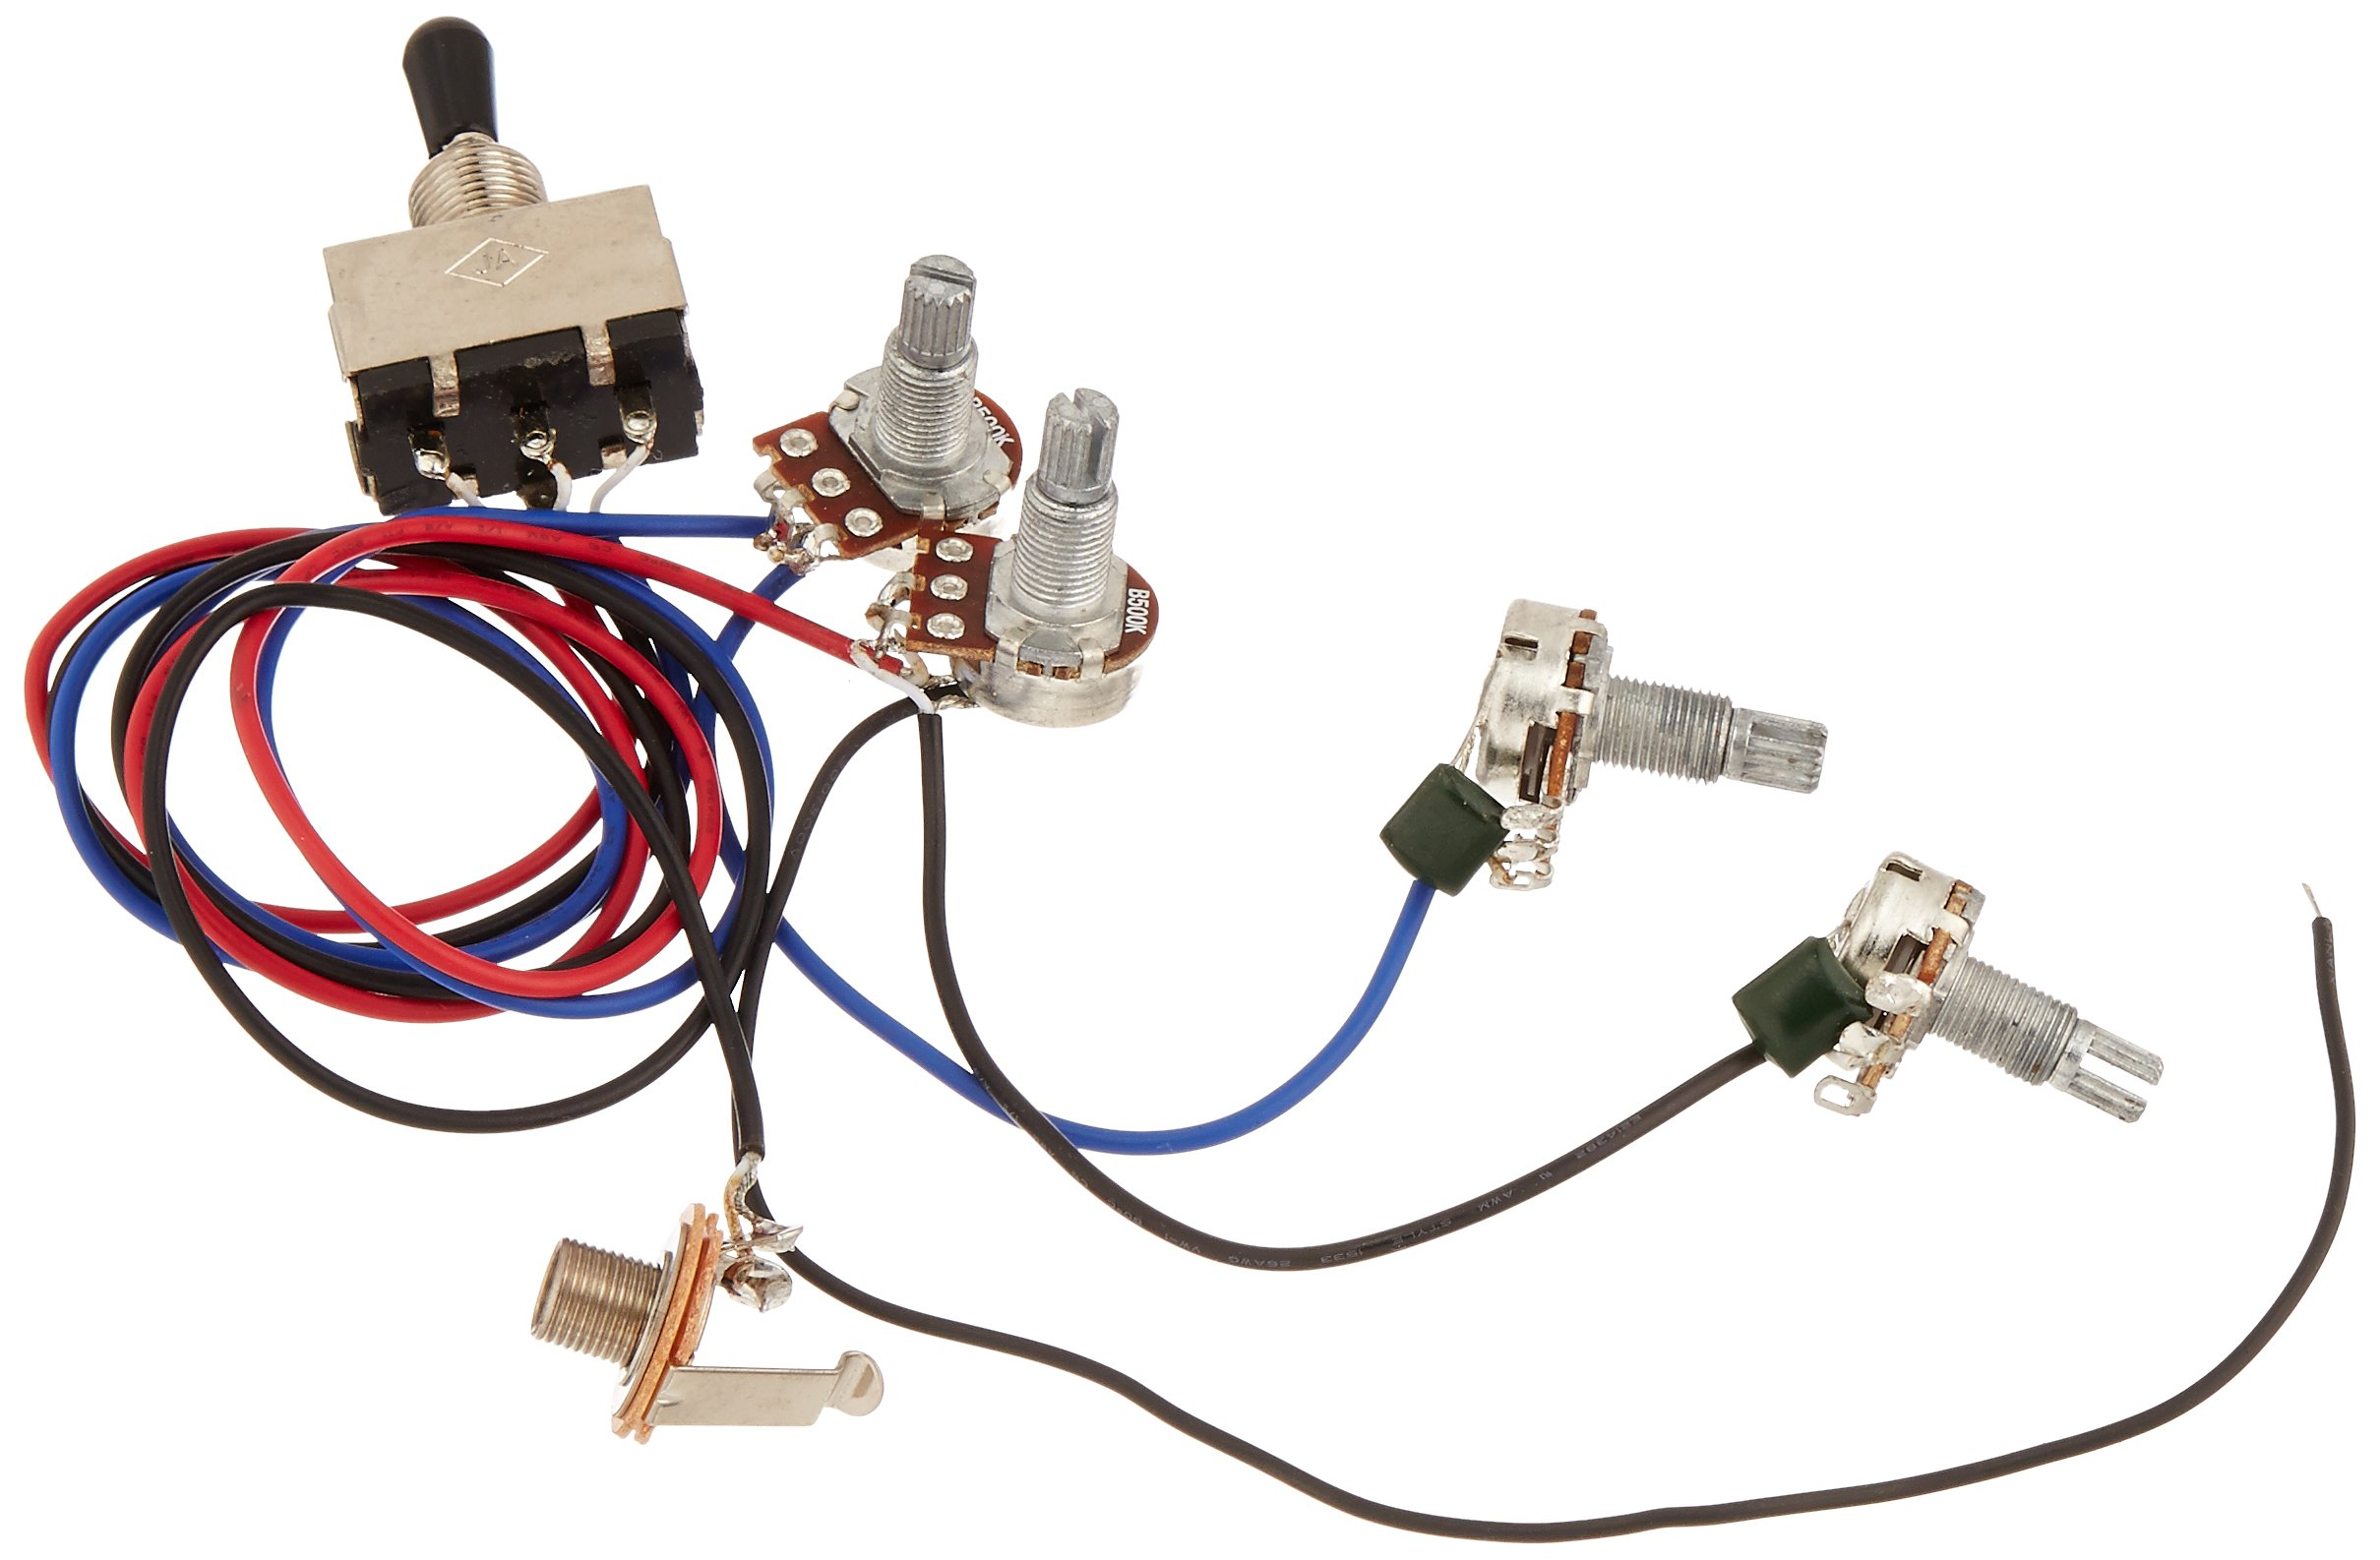 Cheap Wiring 3way Switch Find Deals On Line At Toggle 3 Way Get Quotations Kmise Harness Prewired 2v2t Jack 500k Pots For Gibson Replacement Guitar